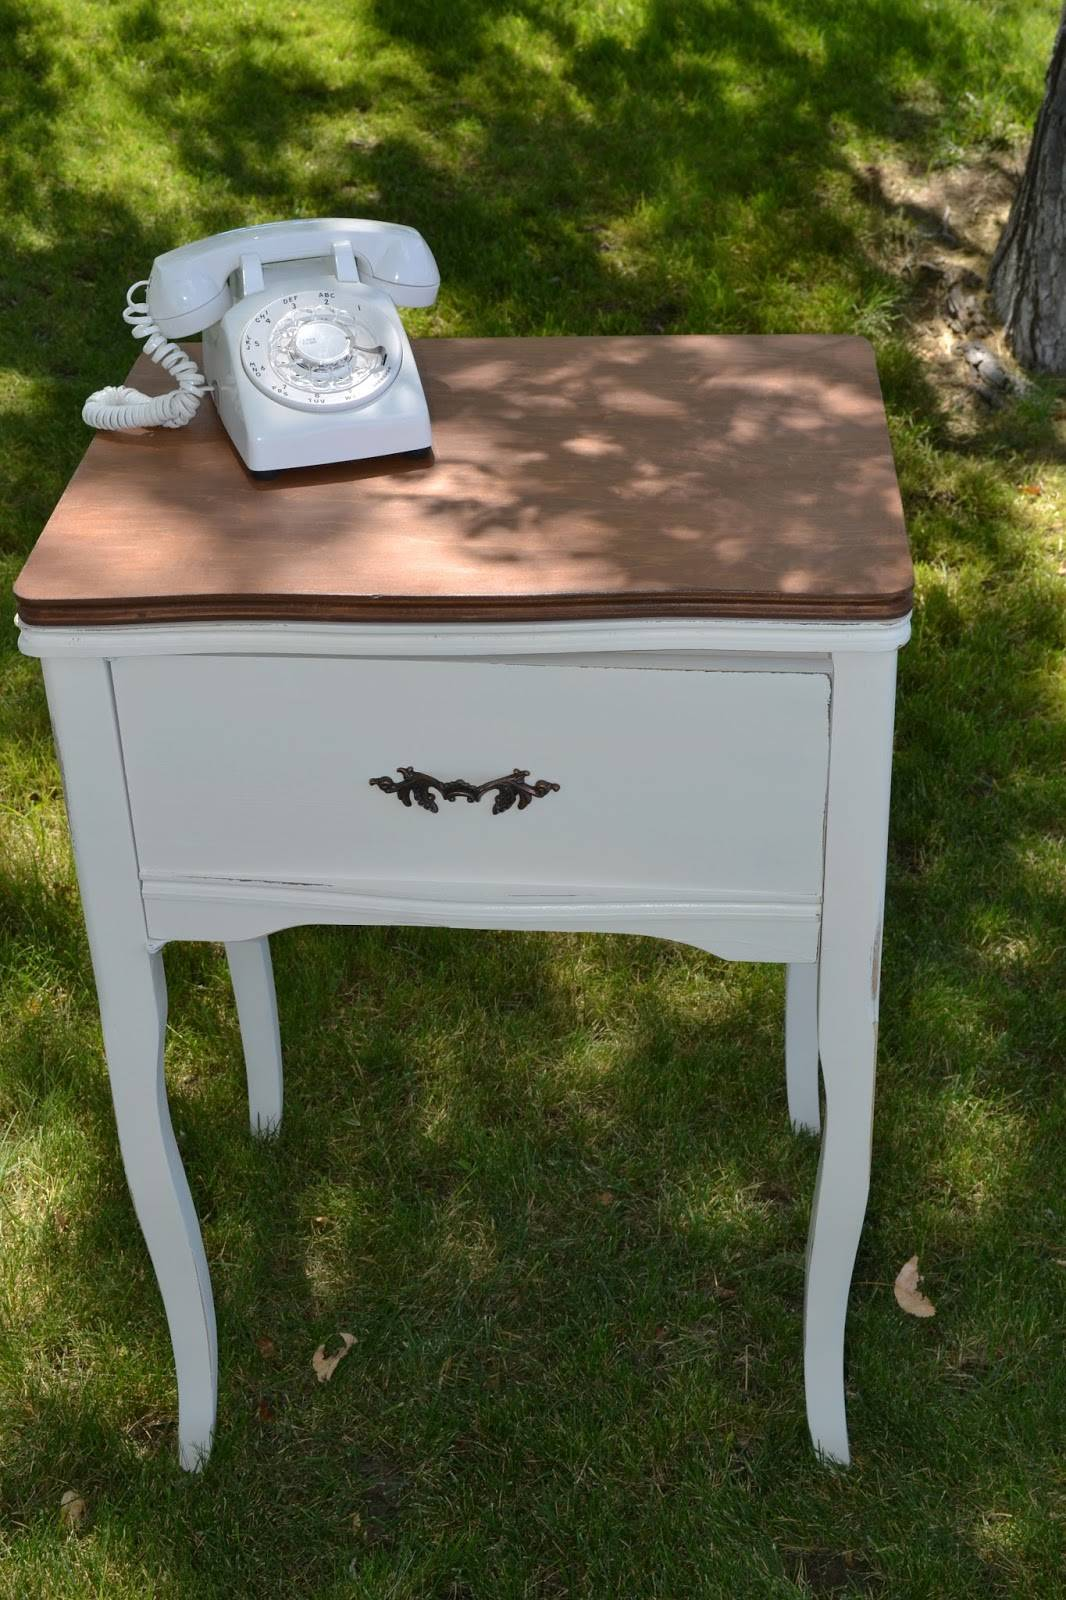 How to turn a sewing table into a telephone stand